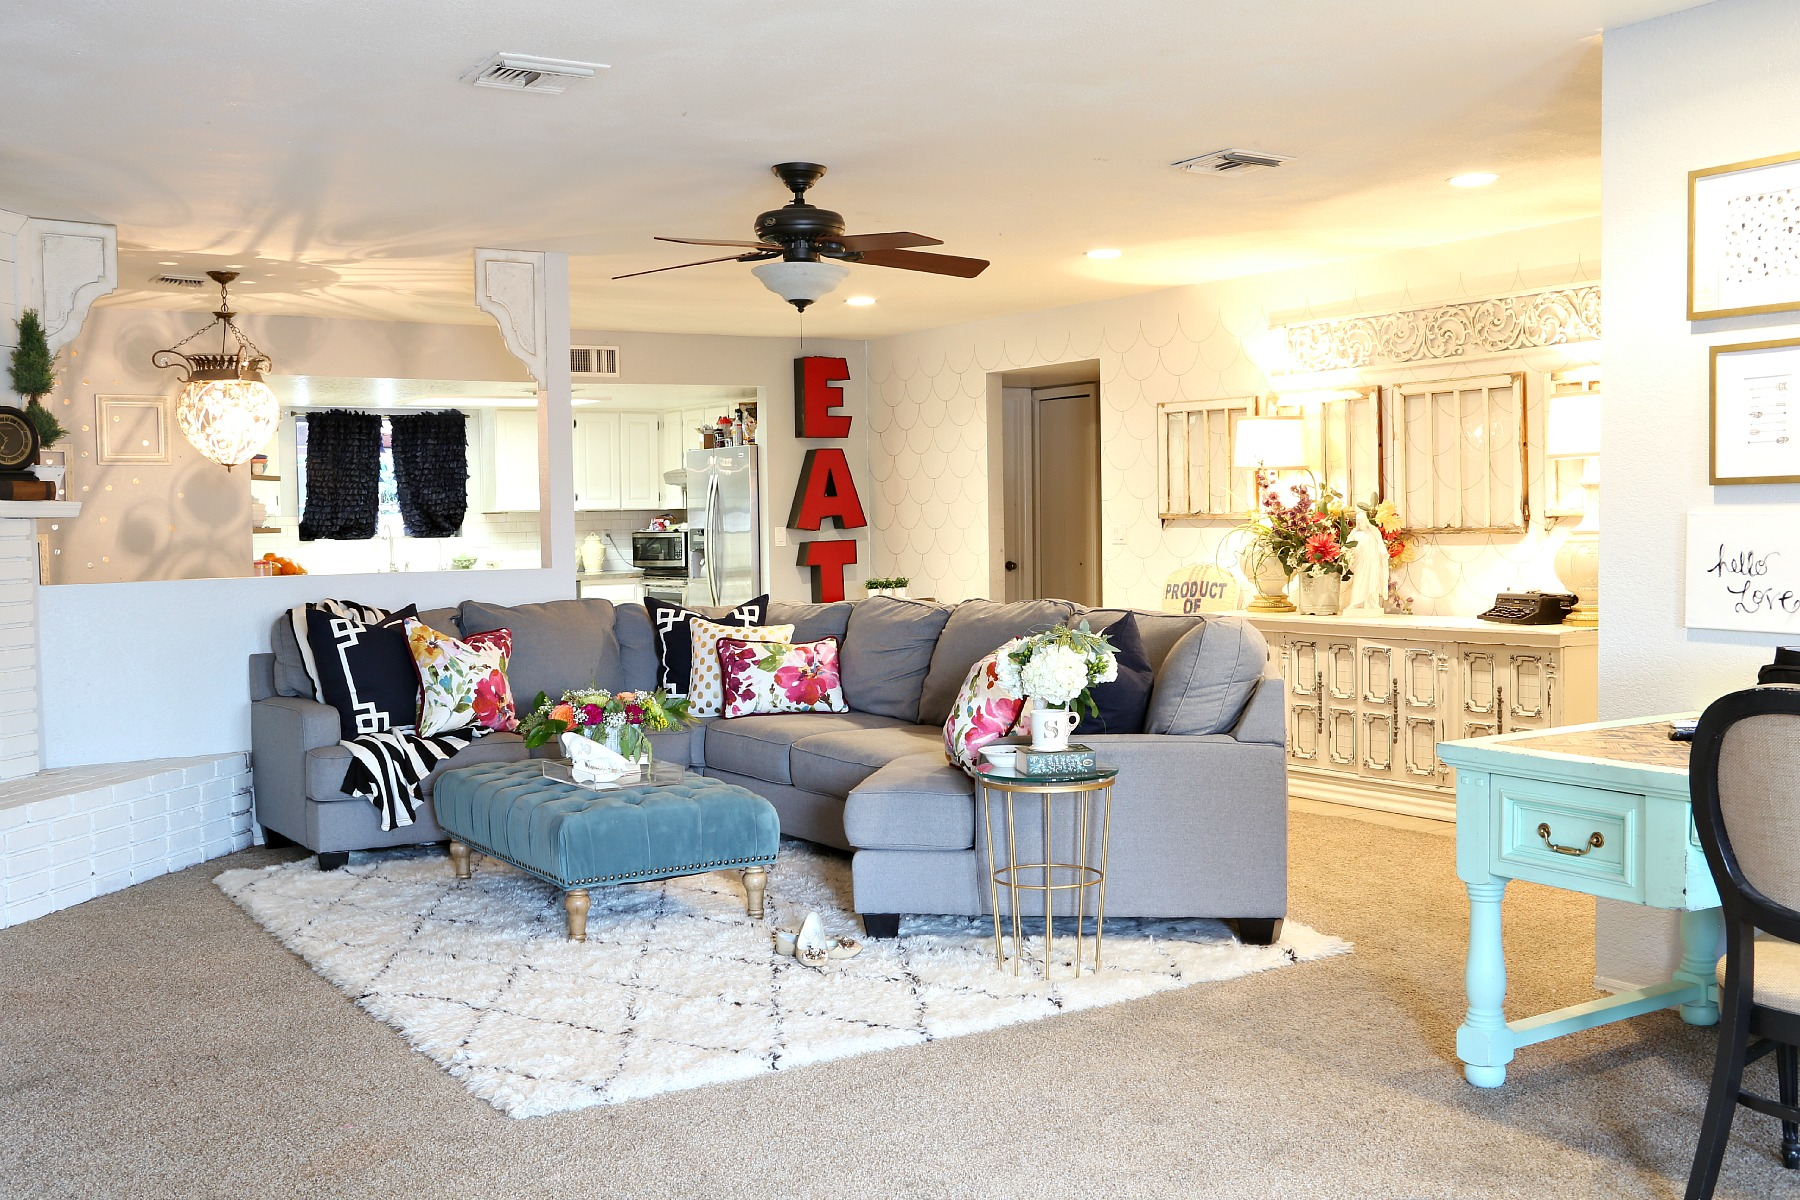 Colorful Living Room with Amazing Rug